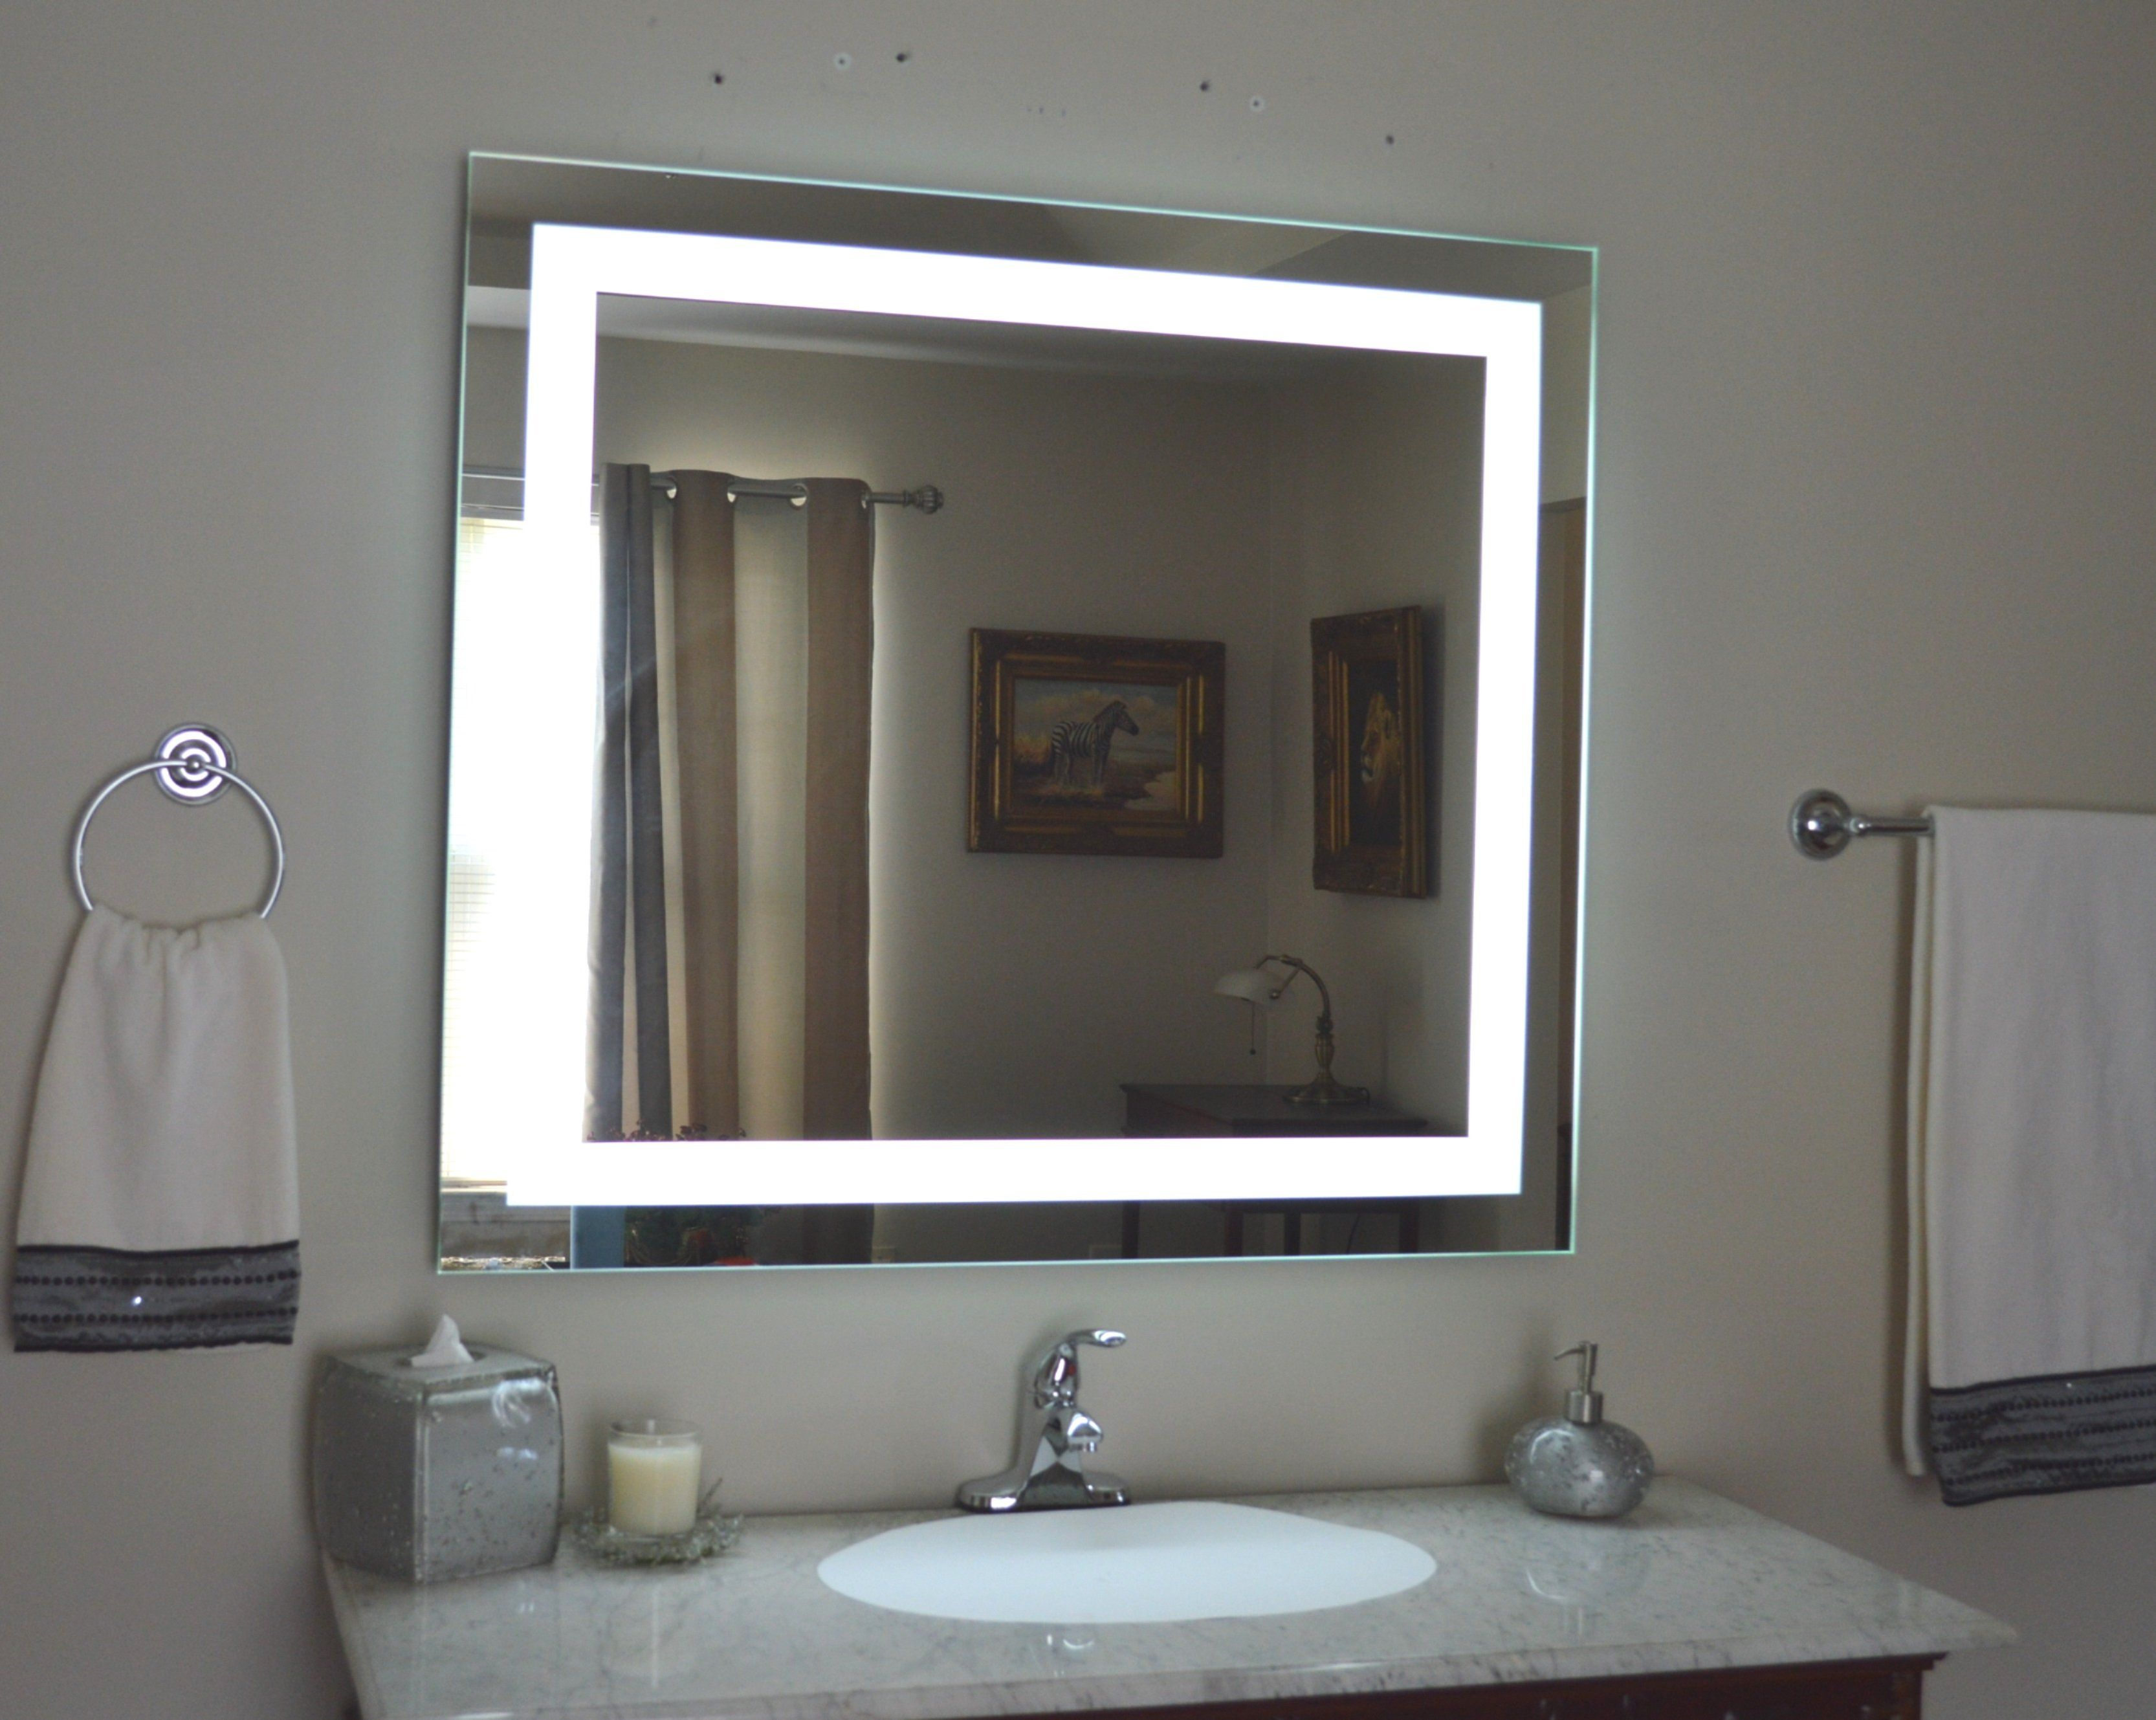 Front Lighted Led Bathroom Vanity Mirror 40 X 36 Rectangular